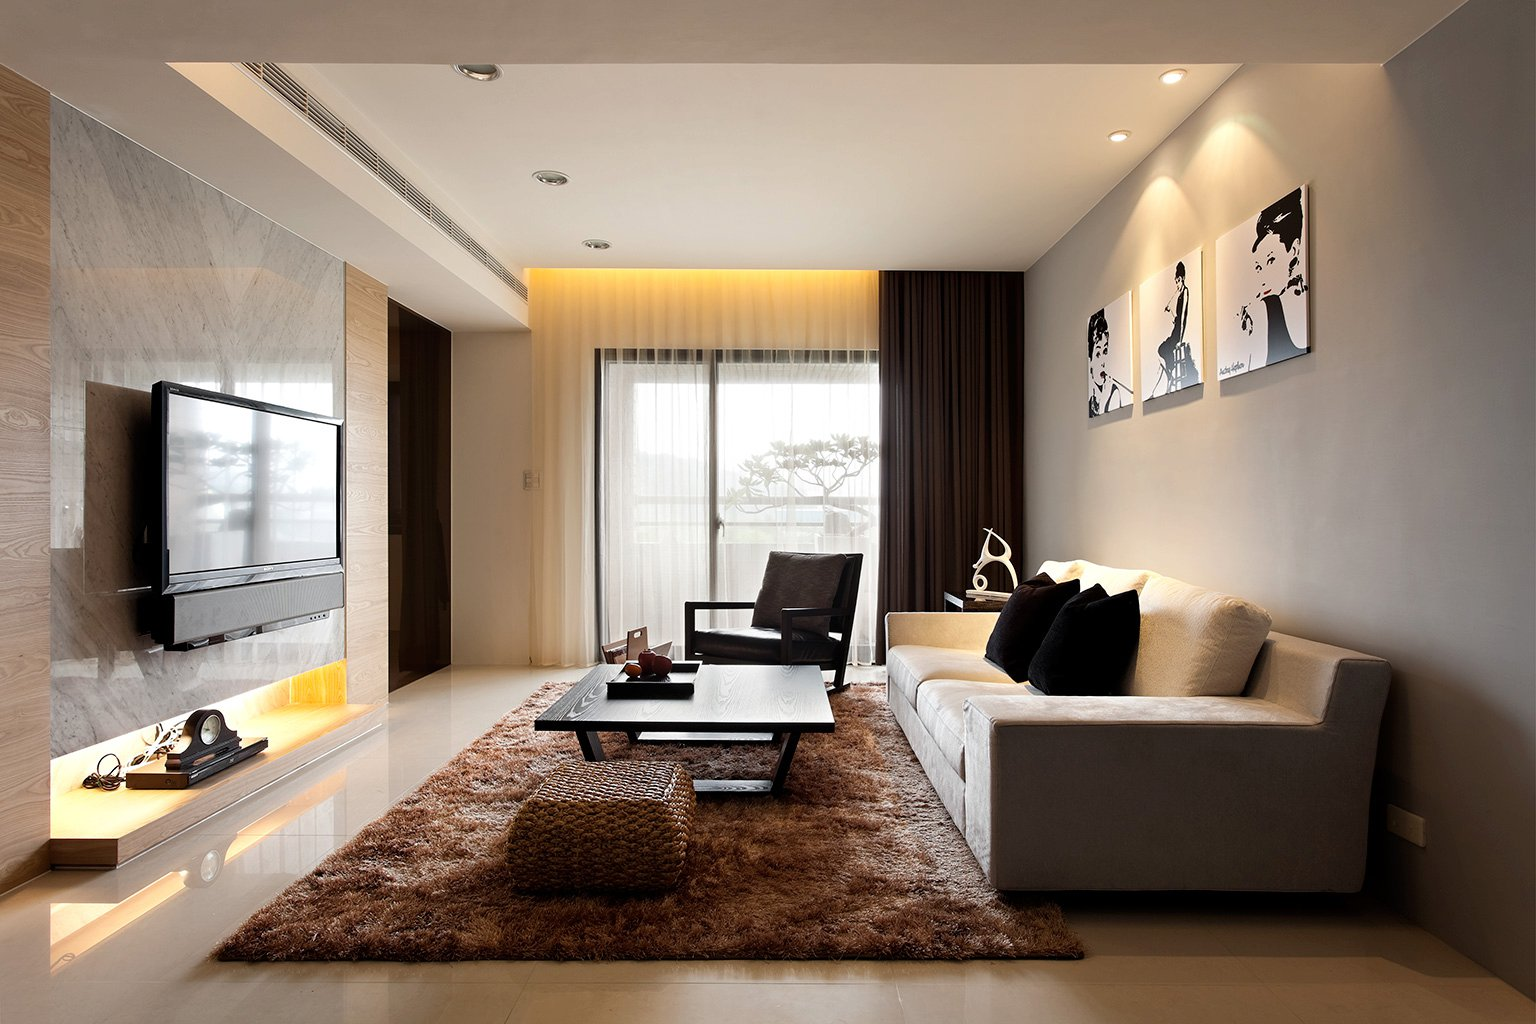 Wonderful Modern Living Room Decorations 1536 x 1024 · 238 kB · jpeg